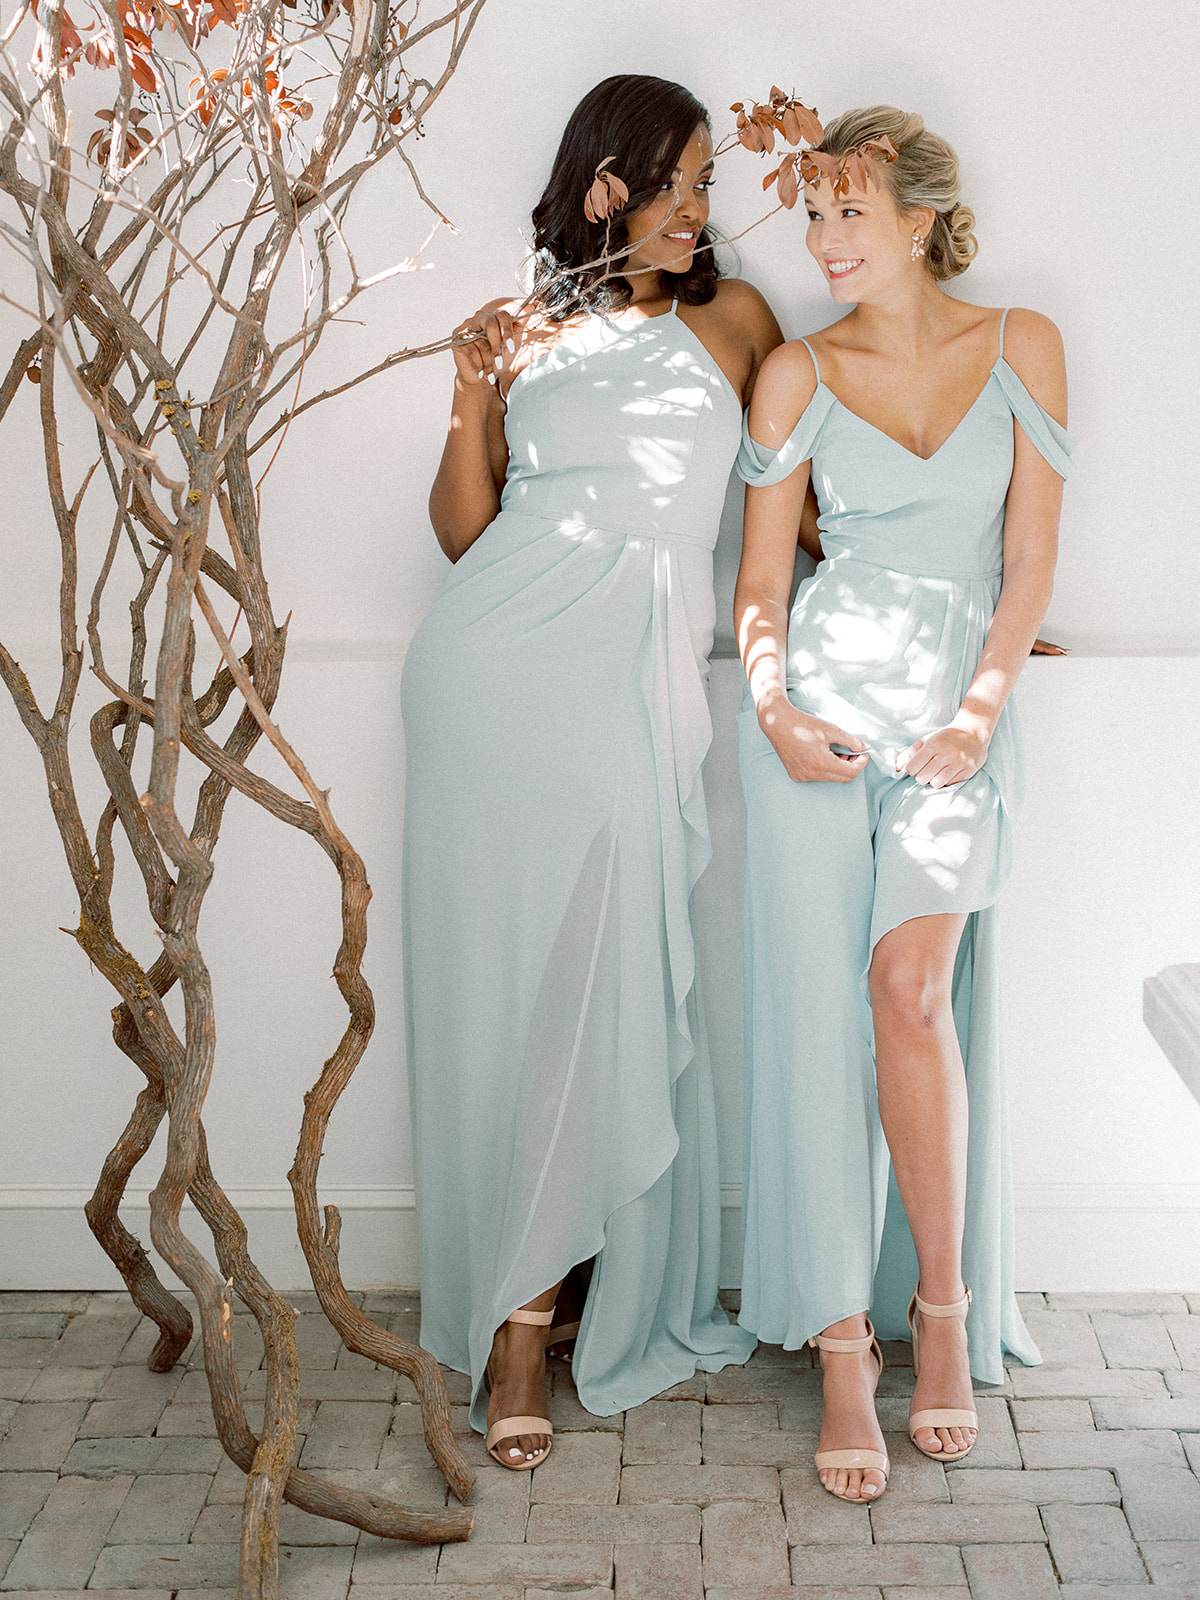 Two bridesmaids wearing dresses in the color Dusty Sage from David's Bridal for the Spring season.